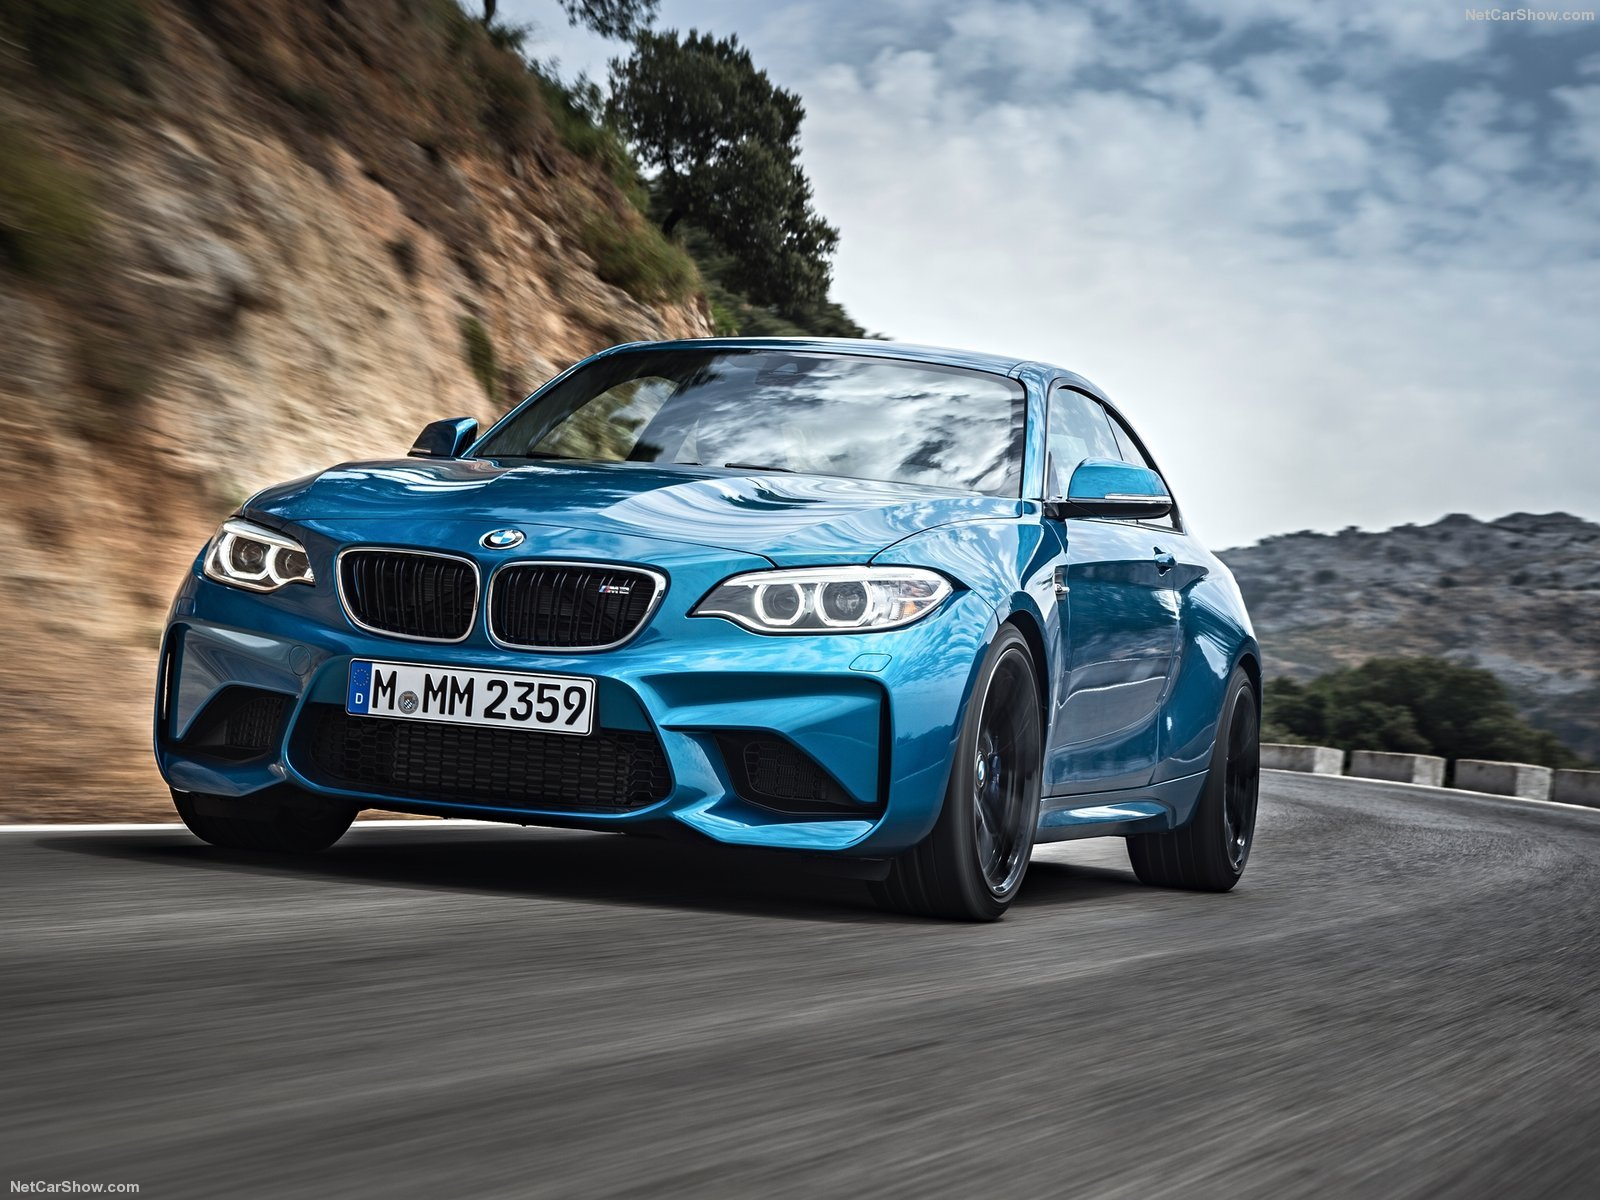 1600x1200 - BMW M2 Coupe Wallpapers 9